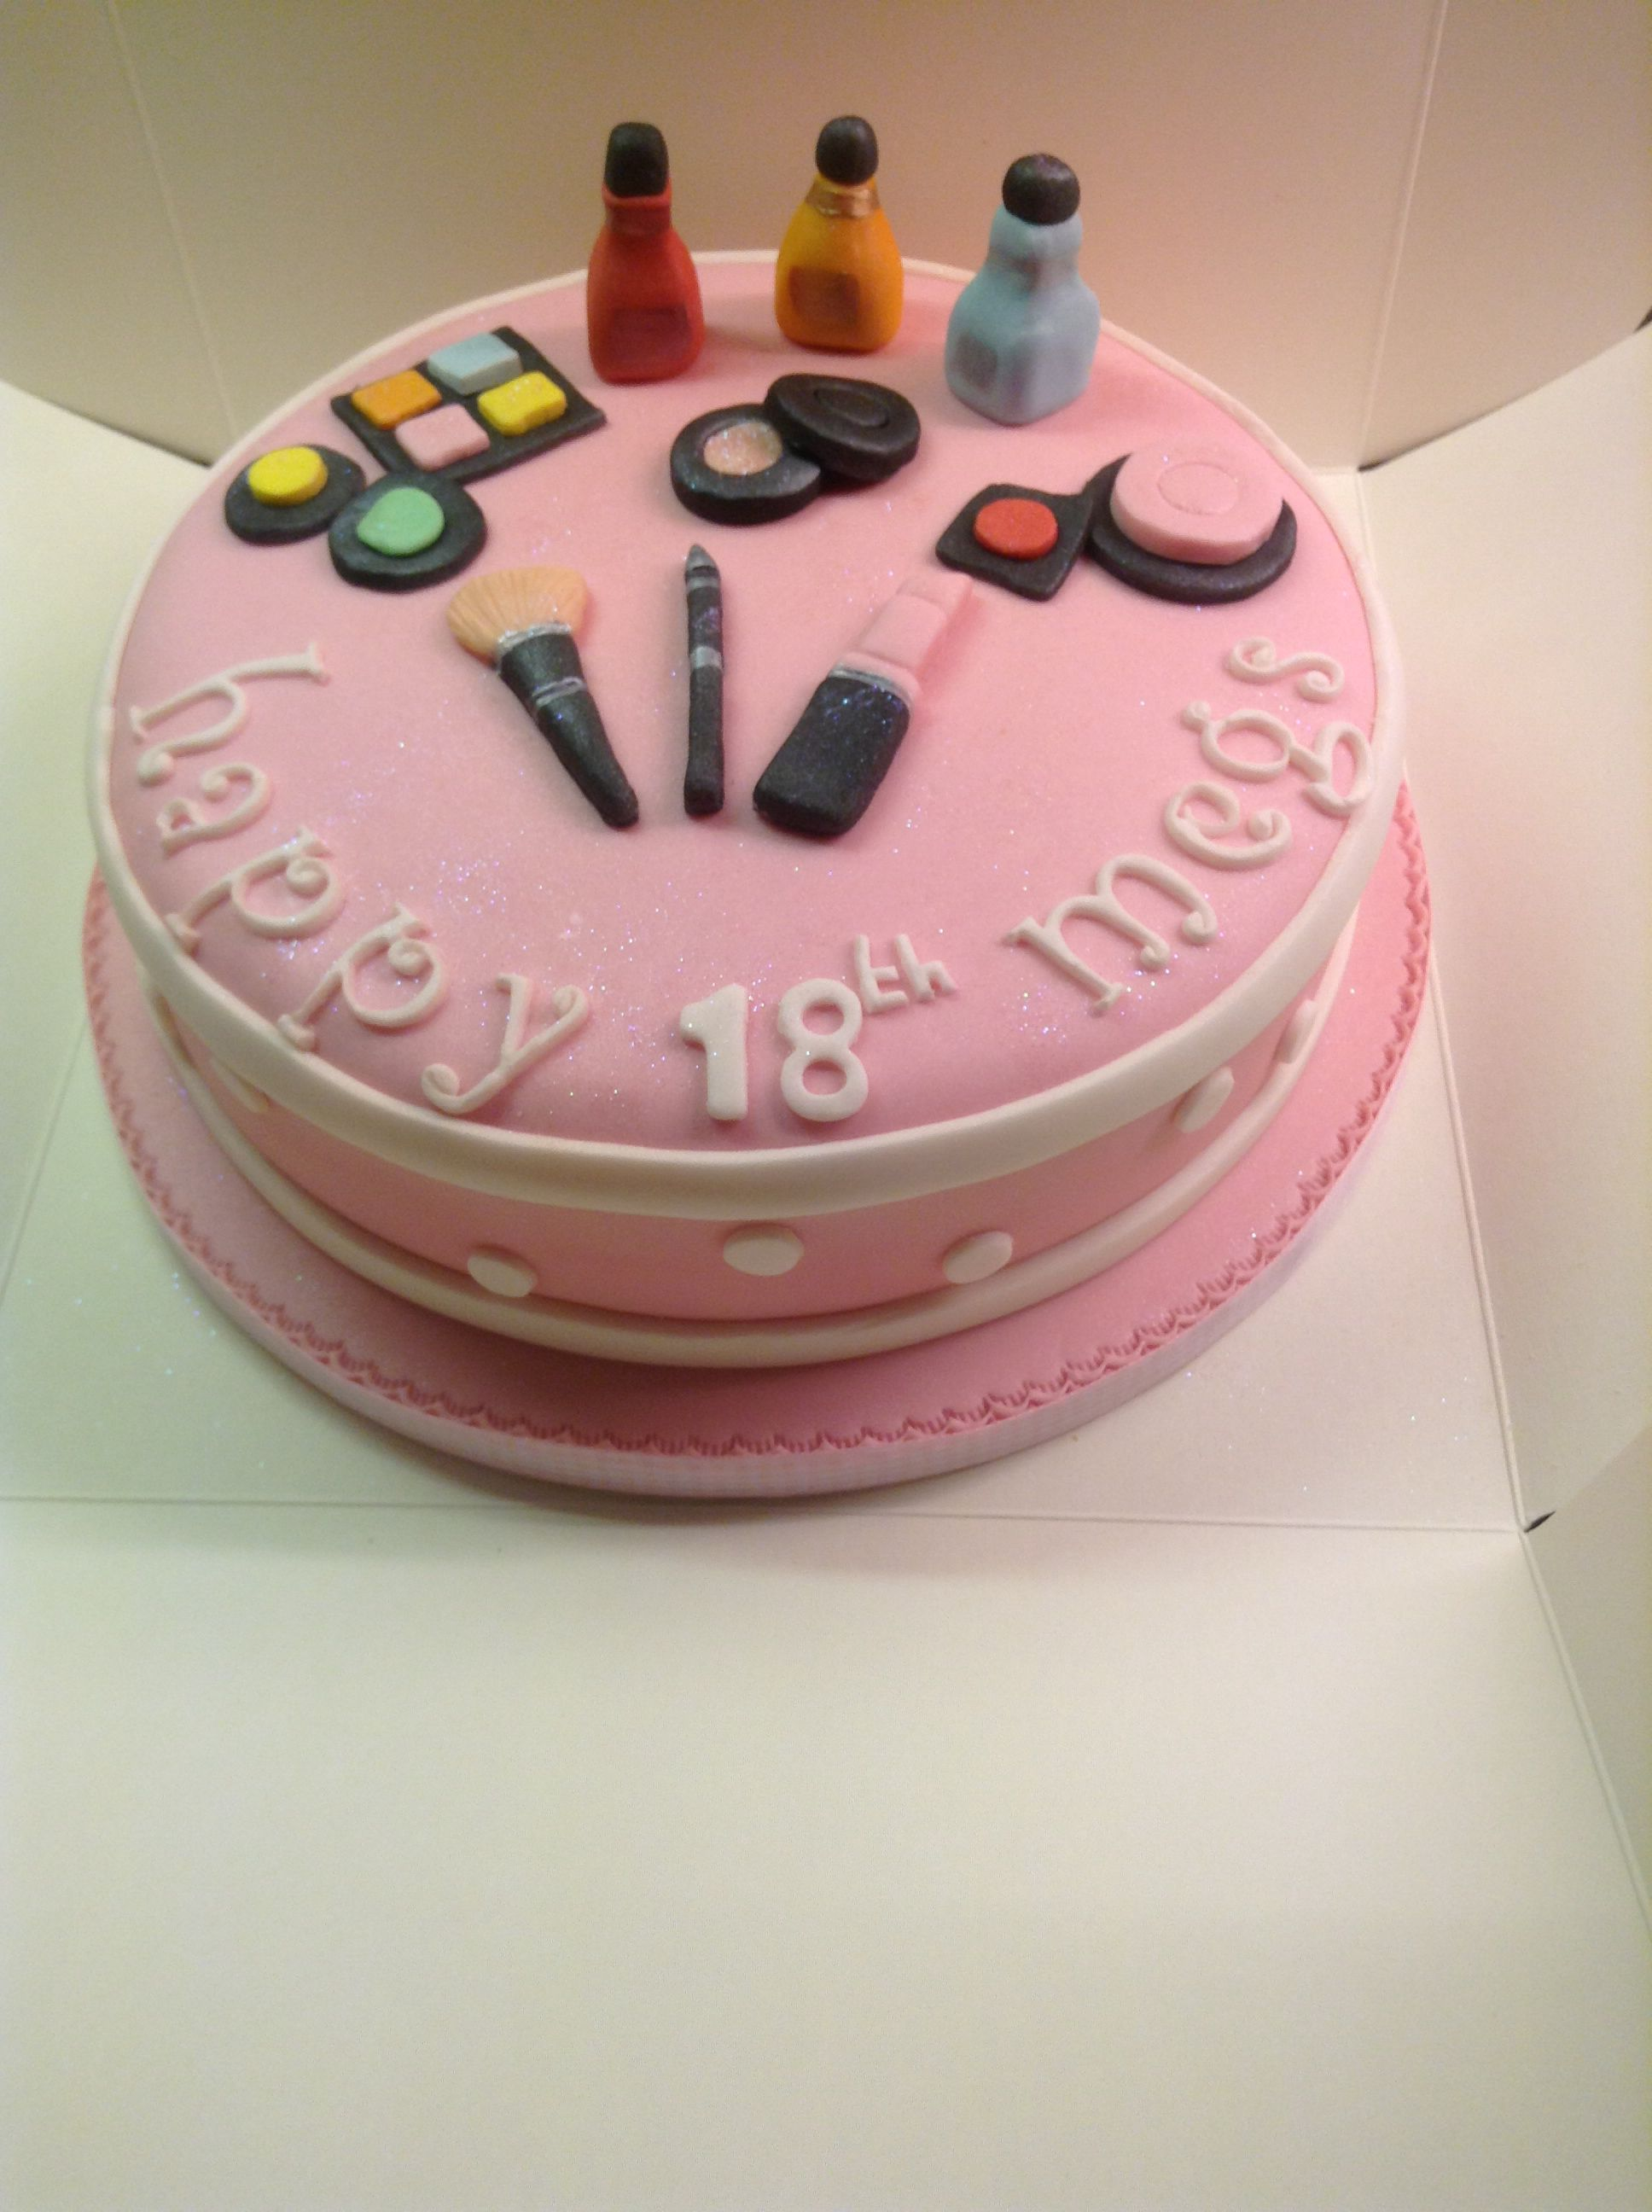 Pin by Gabriela Jf on Decoración unique | Make up cake